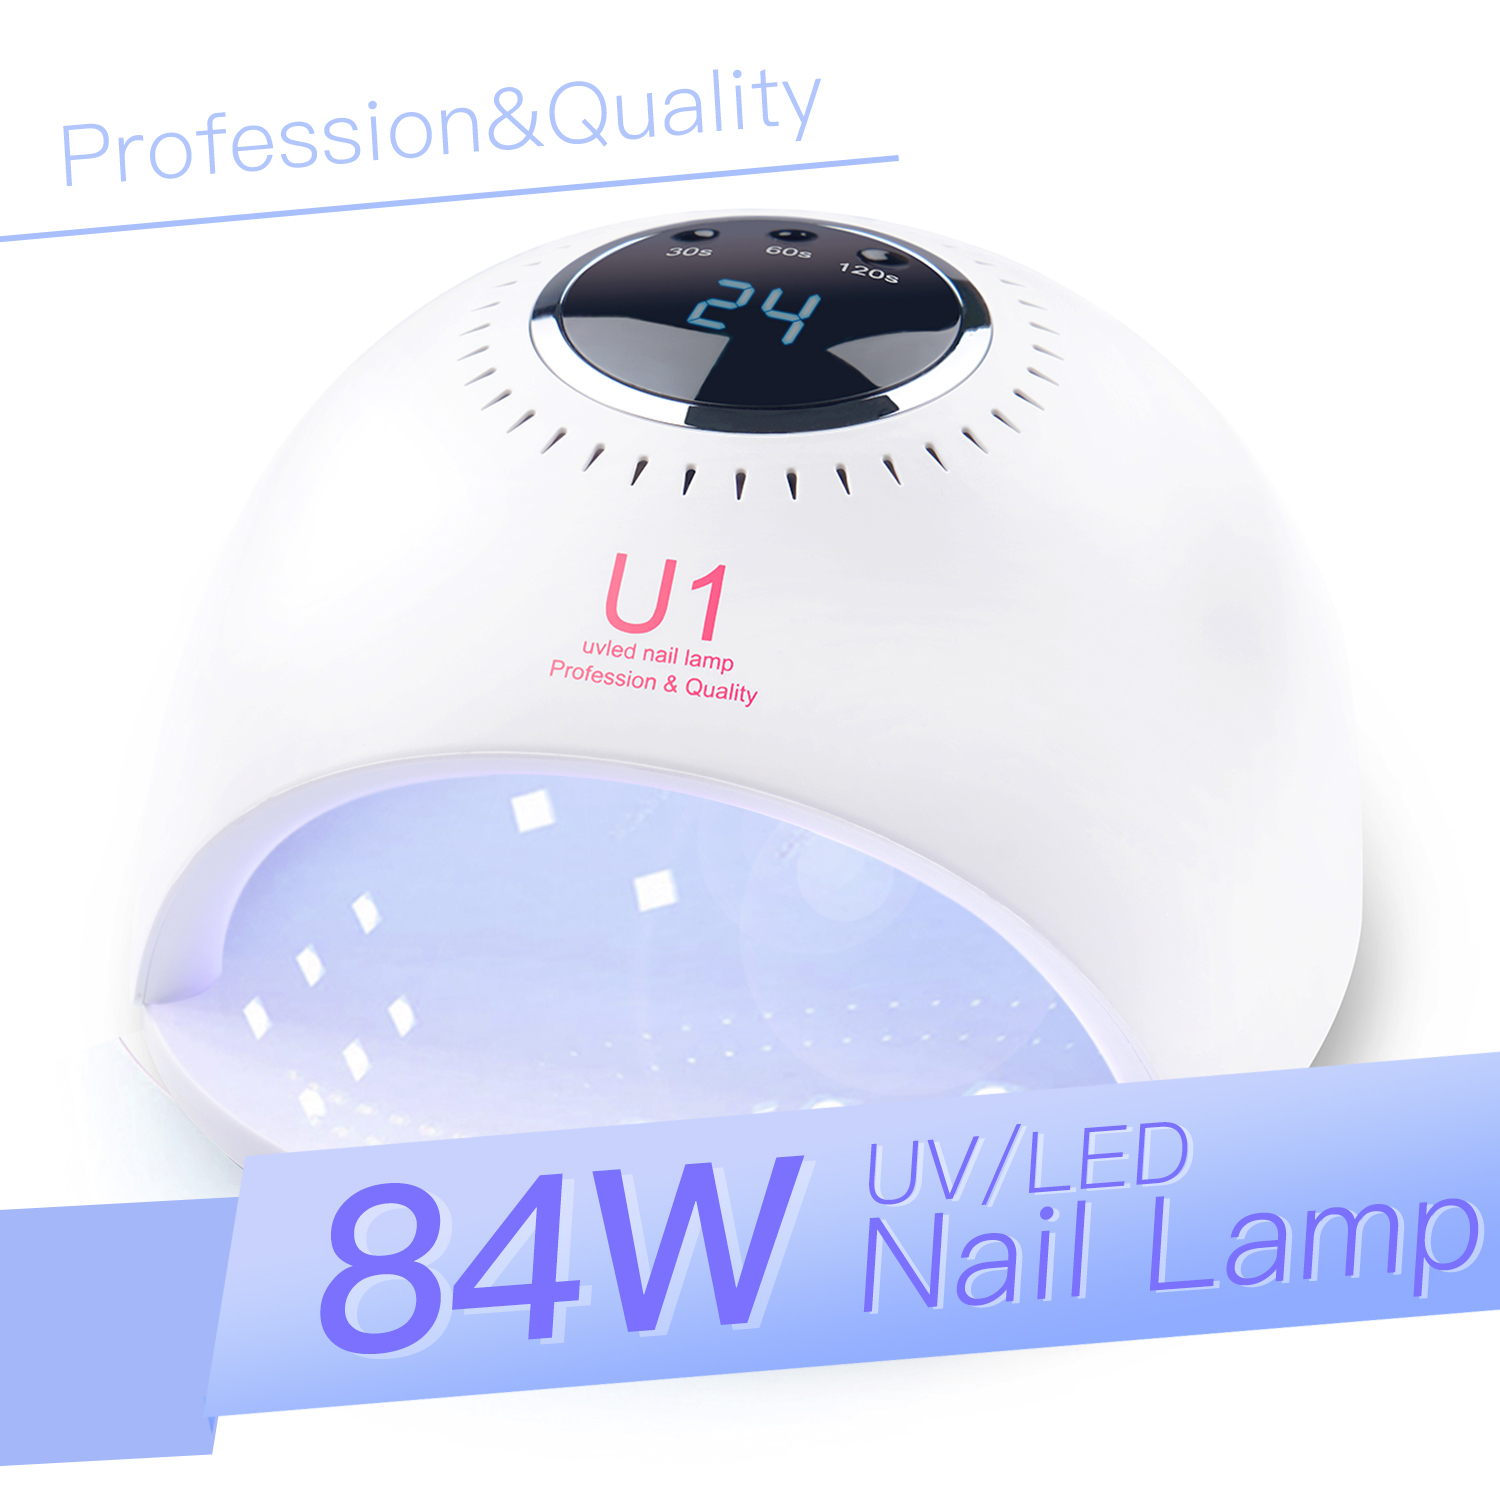 UV LED Nail Lamp  42 Light Beads LED 84W Nail Dryer Curing Lamp With Whitening Function Automatic Sensor 3 Timer Touch Control